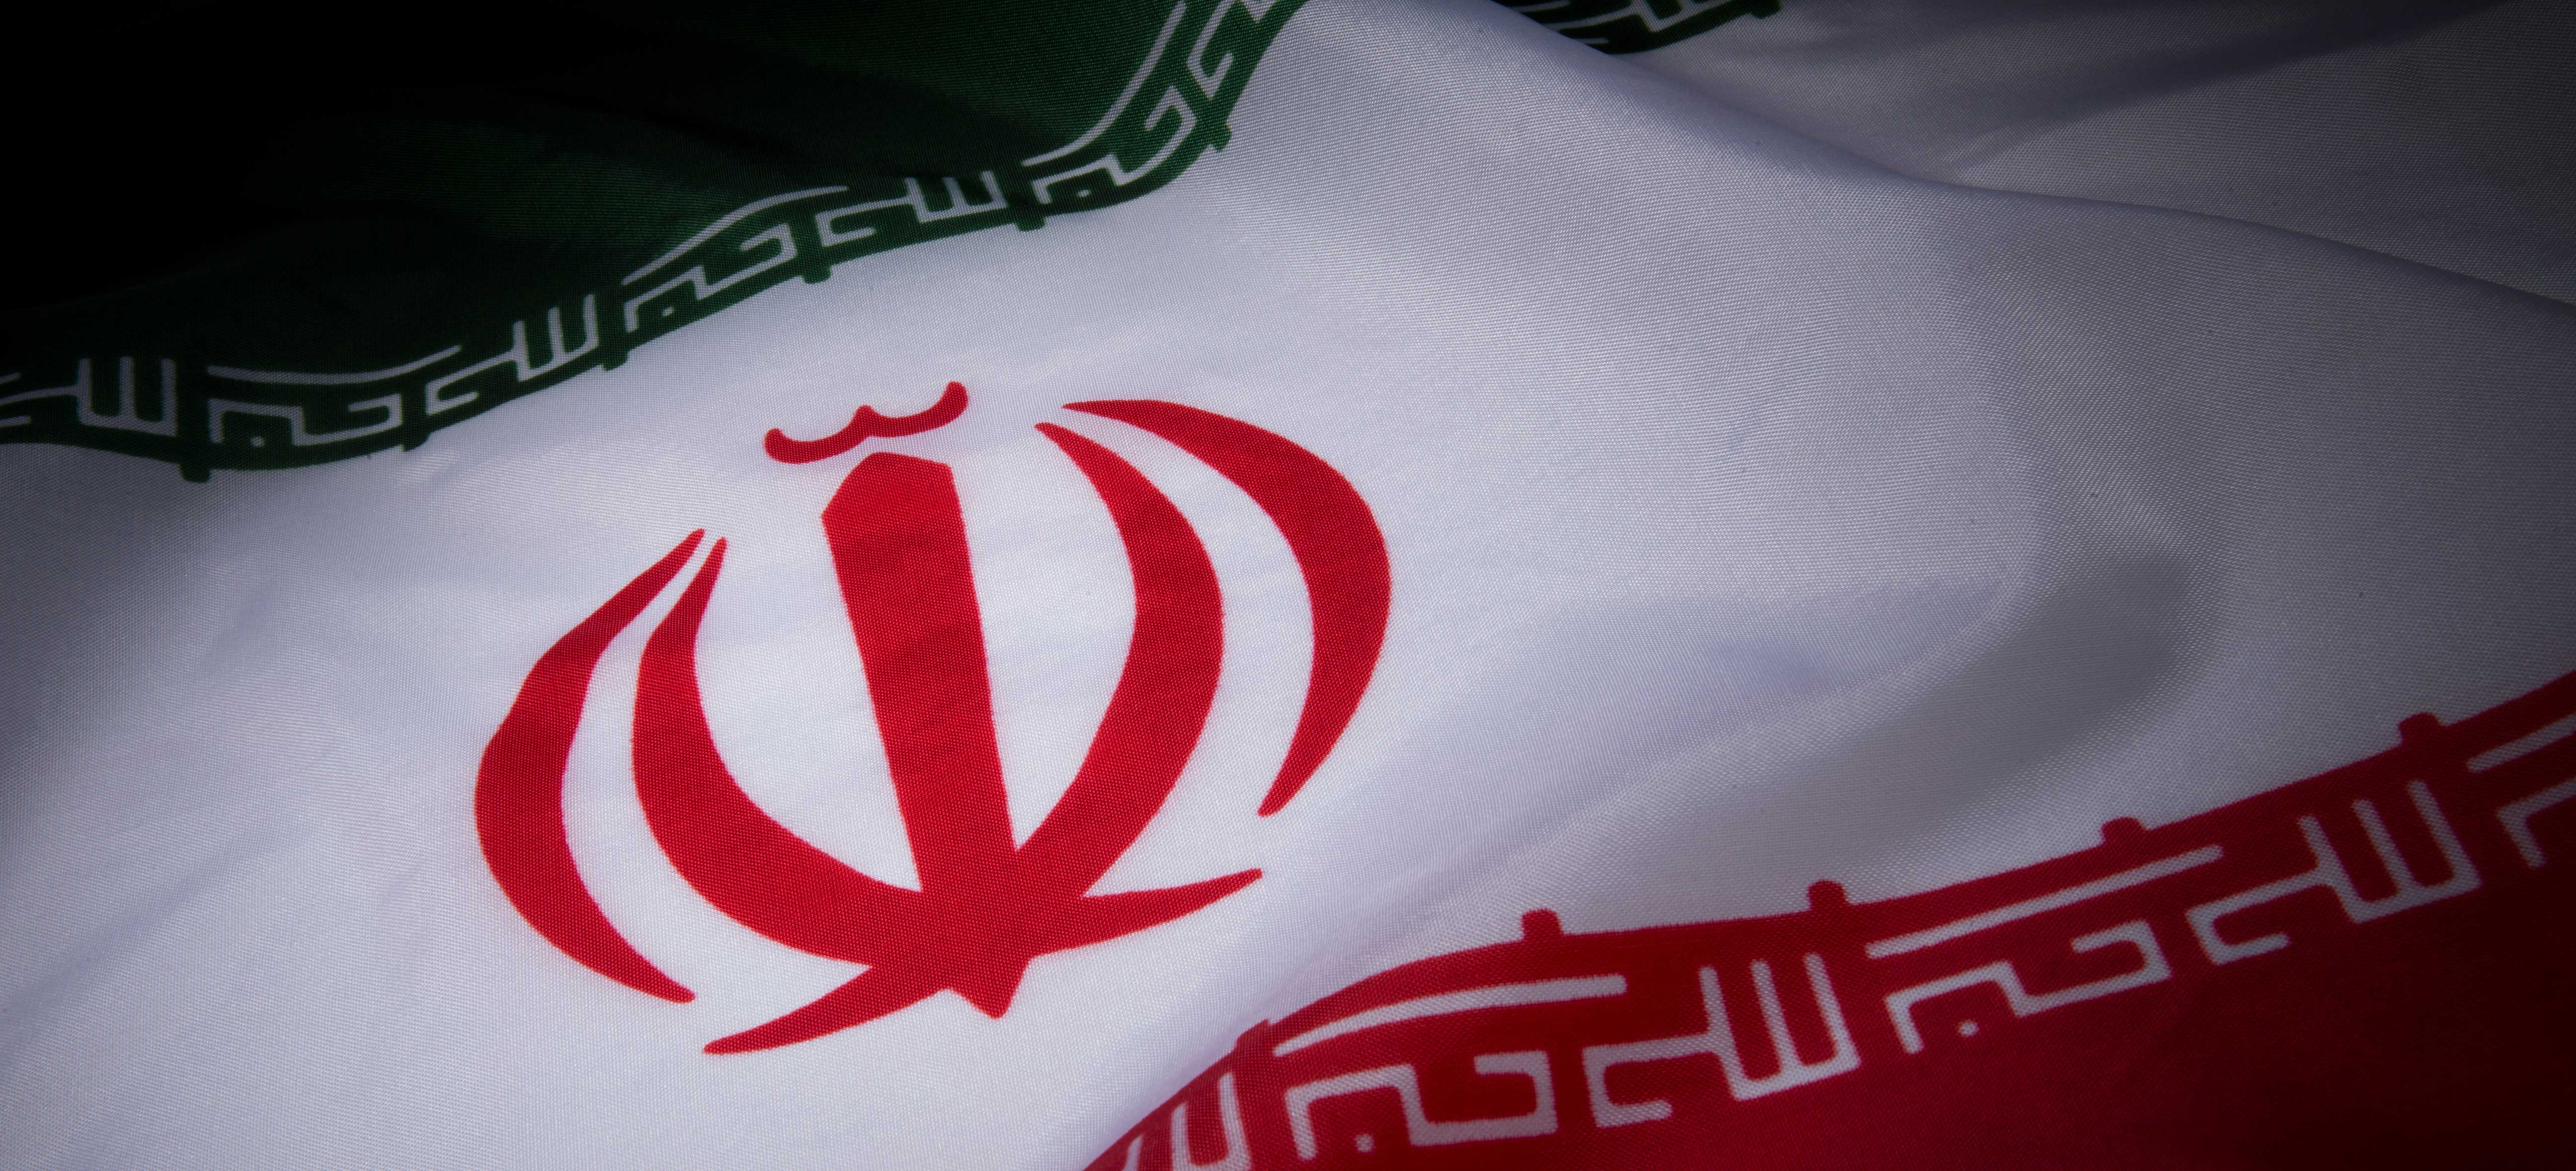 New Swedish Firm Offers Iranian Stock Investment for Bitcoin